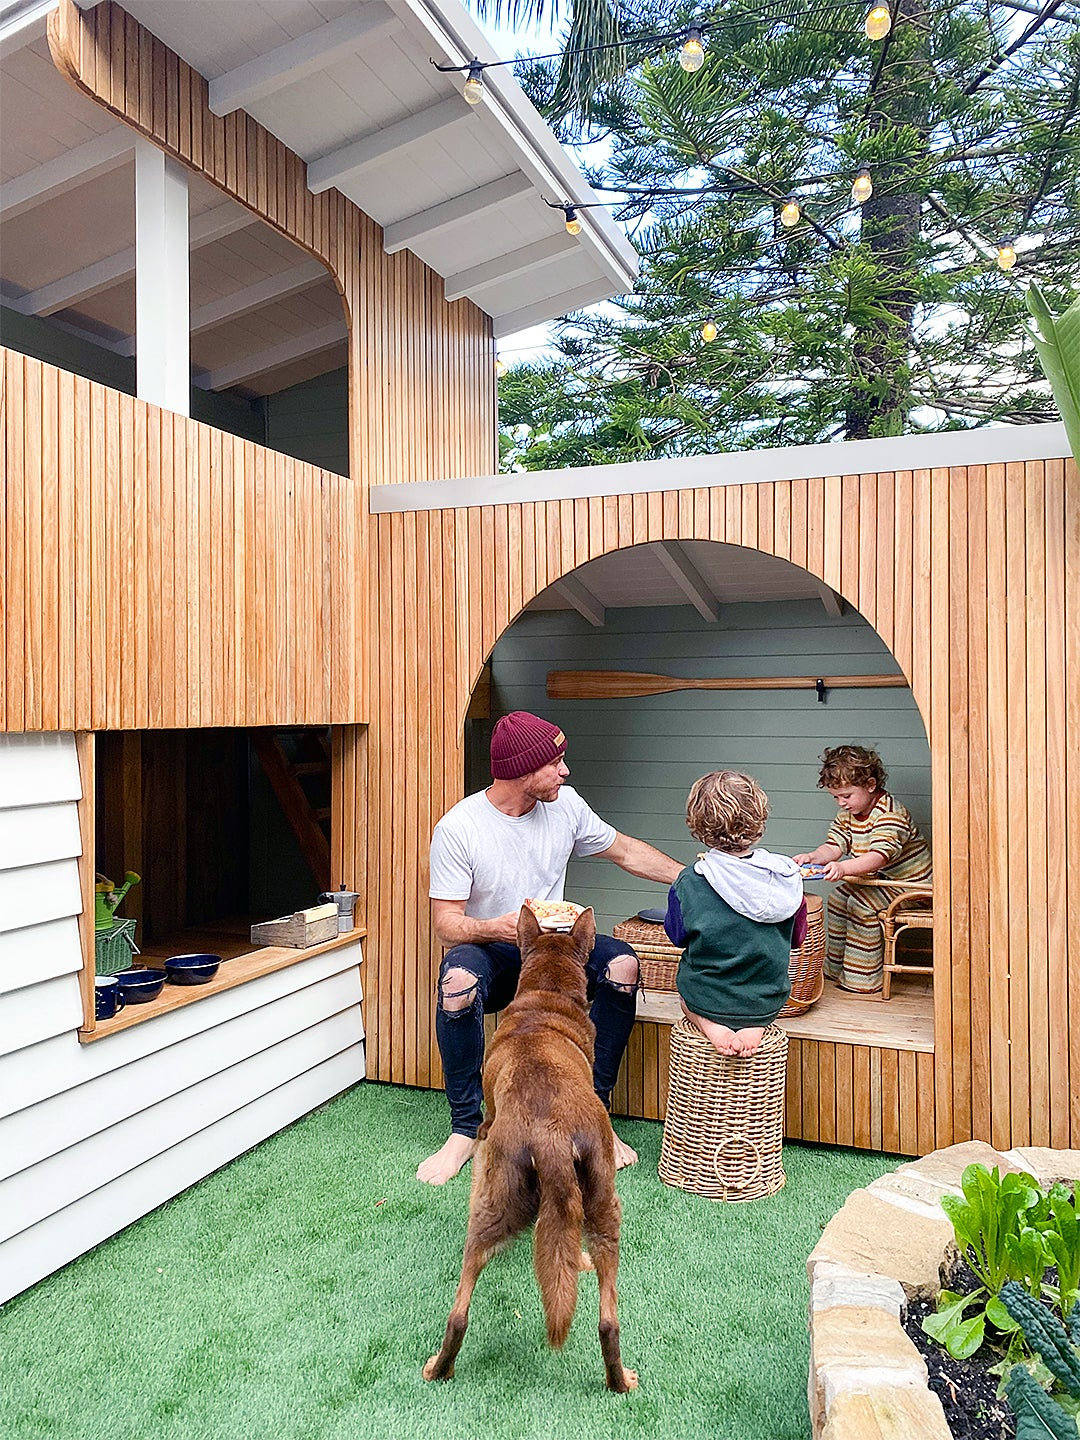 A Slide Made From Scratch Makes This Two-Level Playhouse Triple the Fun